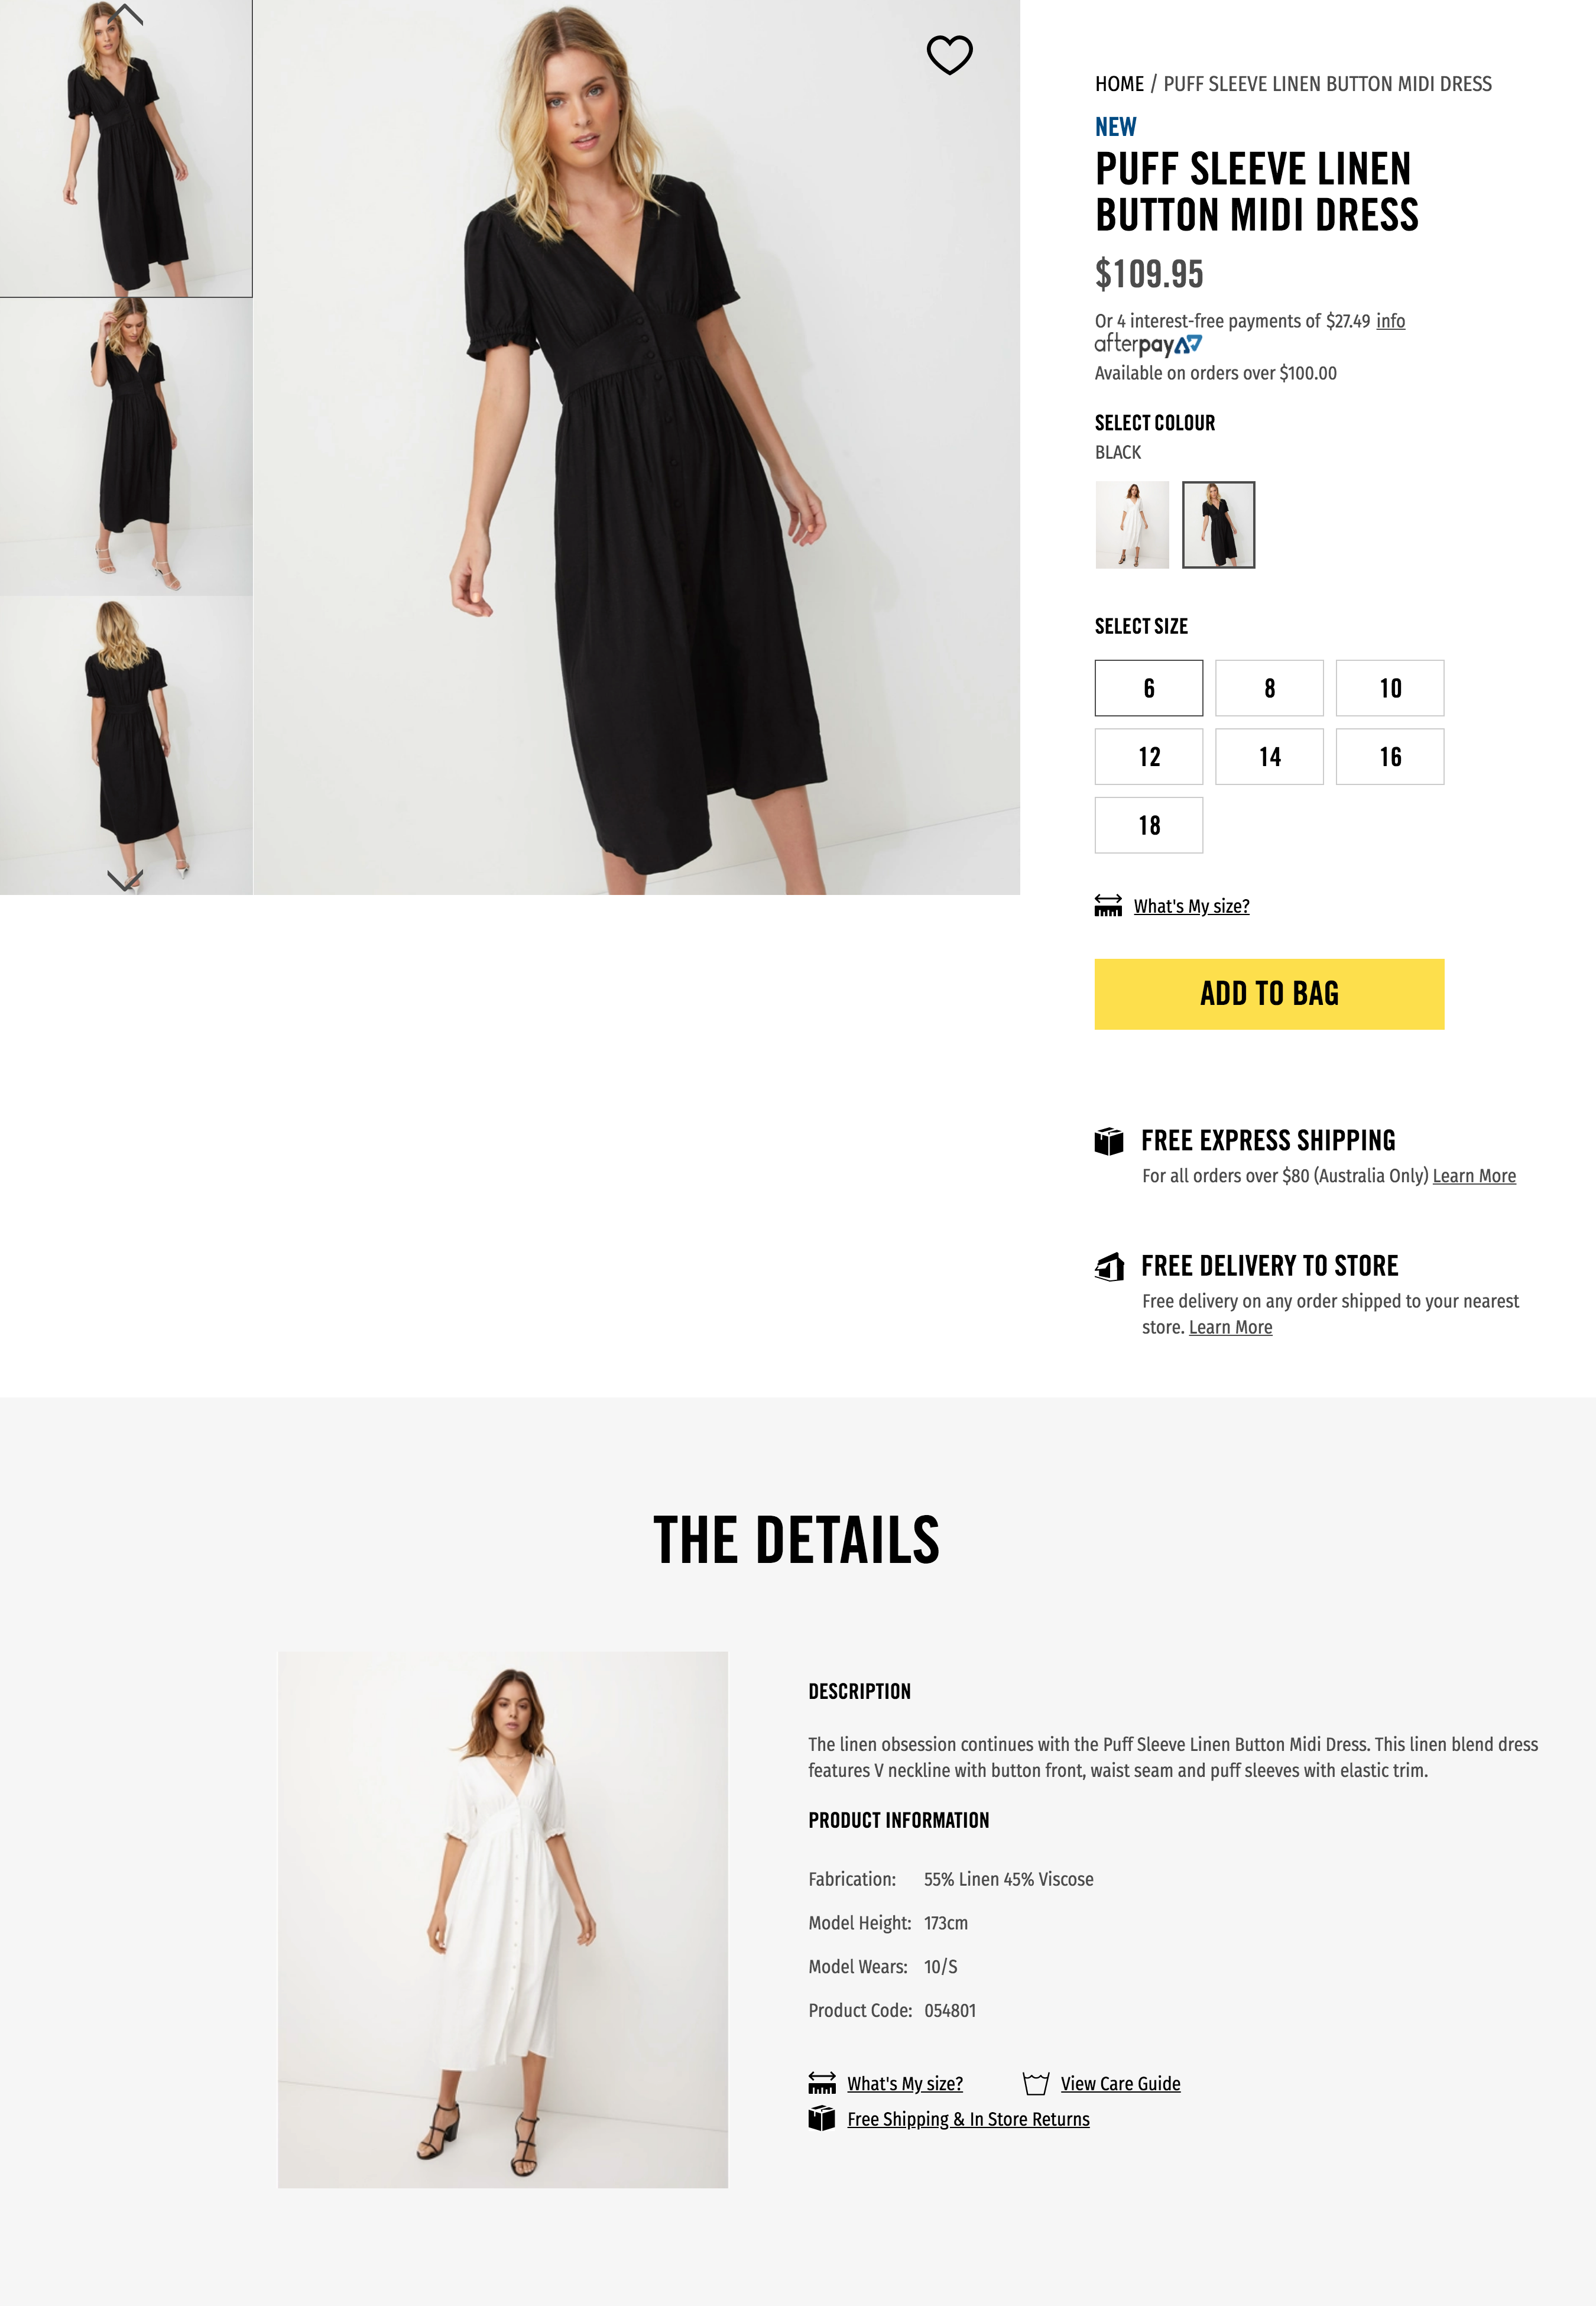 Product description examples for a little black dress from Sportsgirl